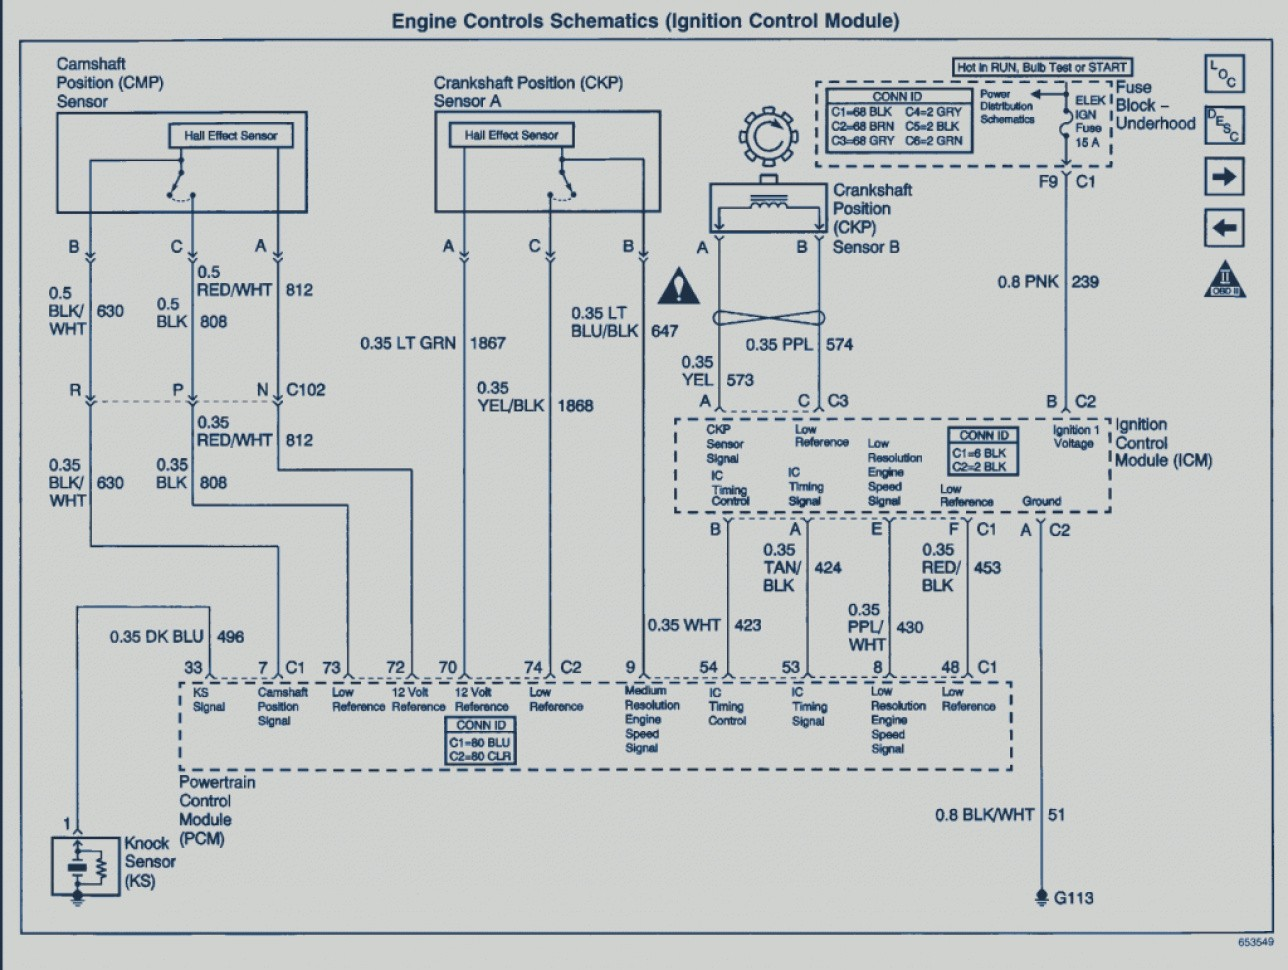 1984 Pontiac Grand Prix Wiring Diagram | Wiring Diagram on 1963 pontiac exhaust system, 1963 pontiac interior, 1963 pontiac transaxle, 1963 pontiac quarter panels,